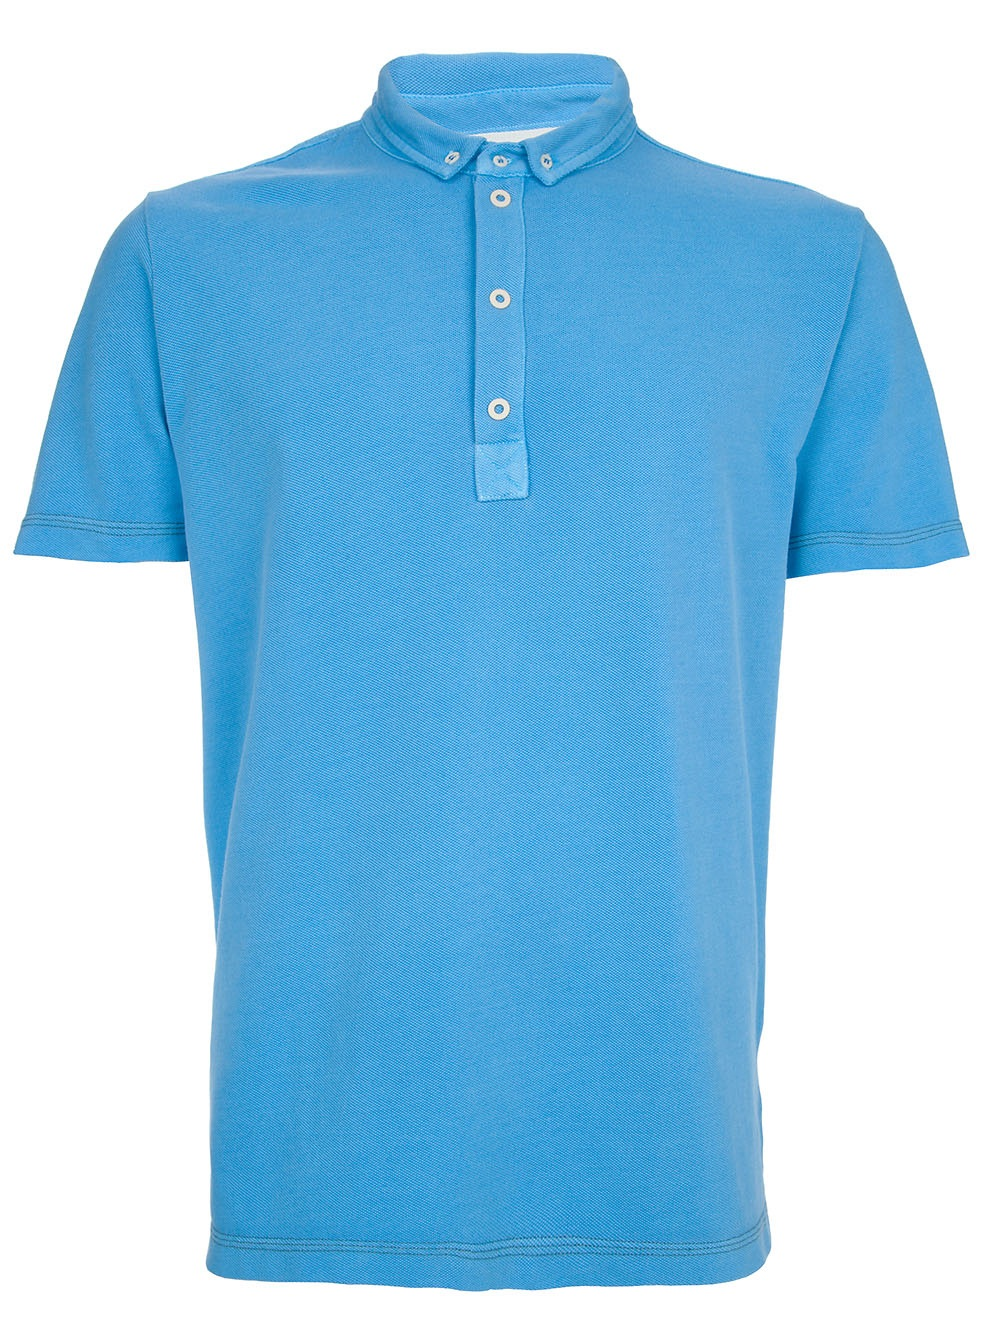 Mauro grifoni button down polo shirt in blue for men lyst for No button polo shirts